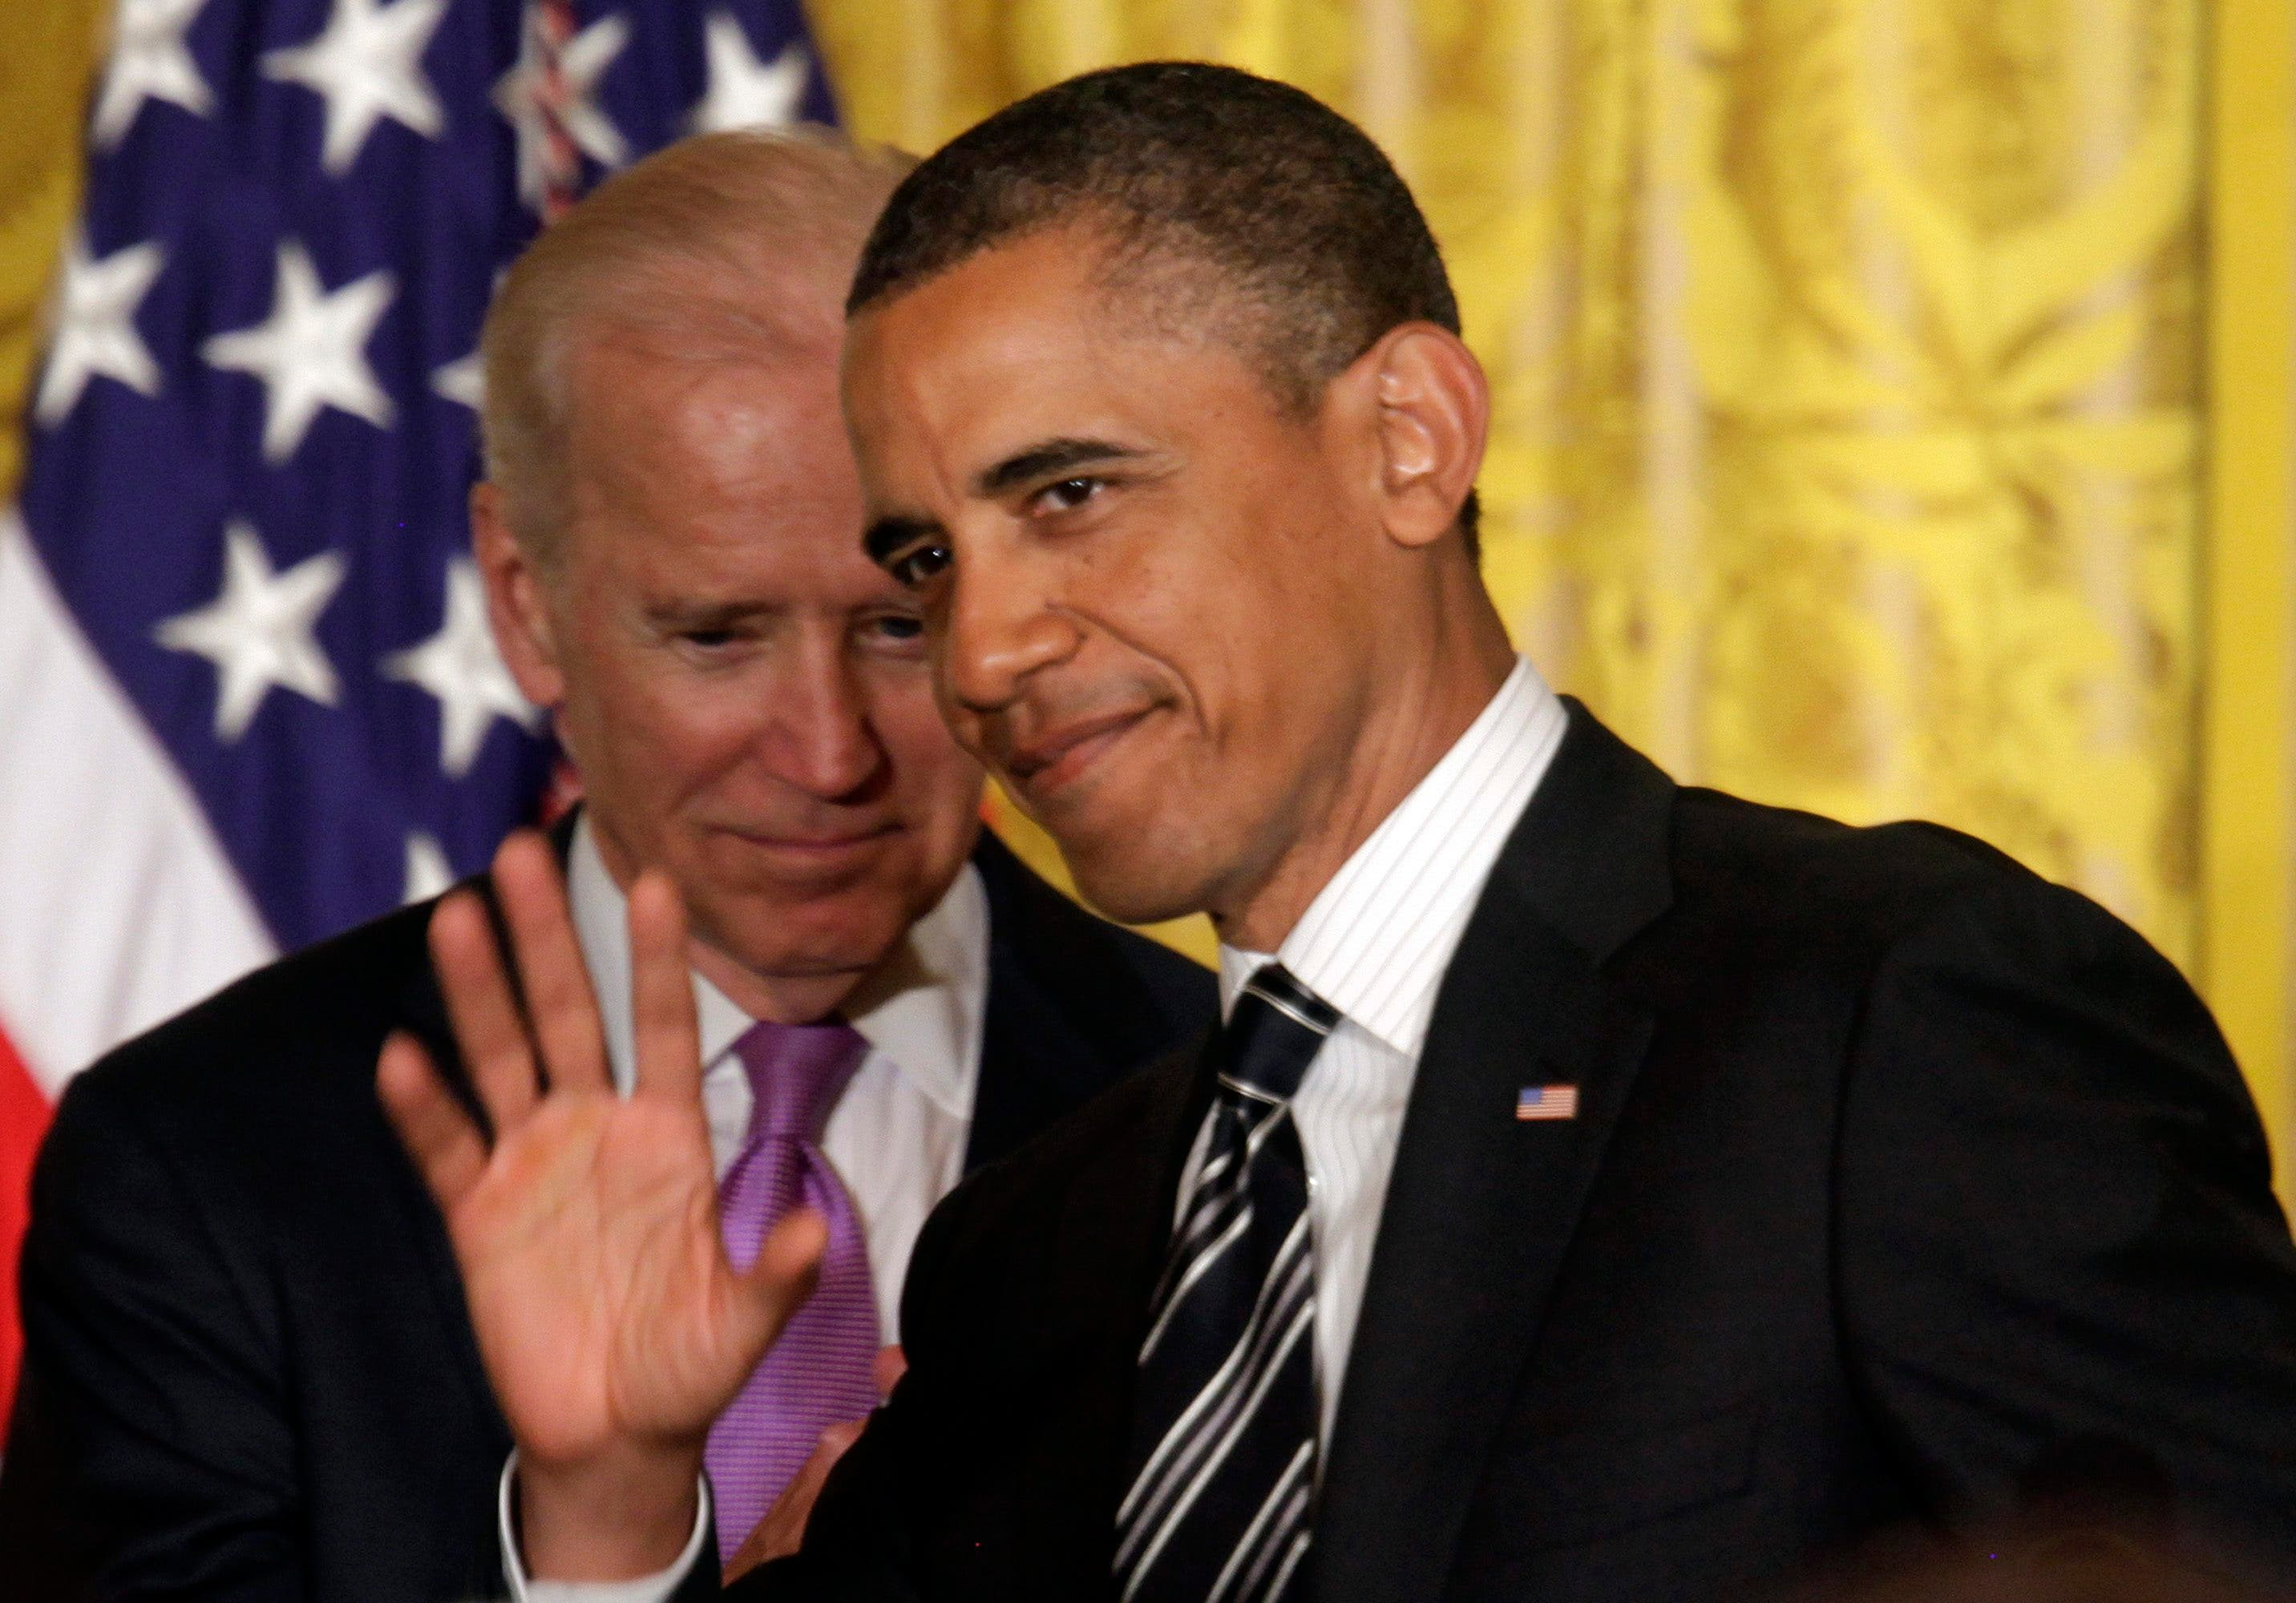 Barack Obama and Joe Biden. (File photo: Reuters)